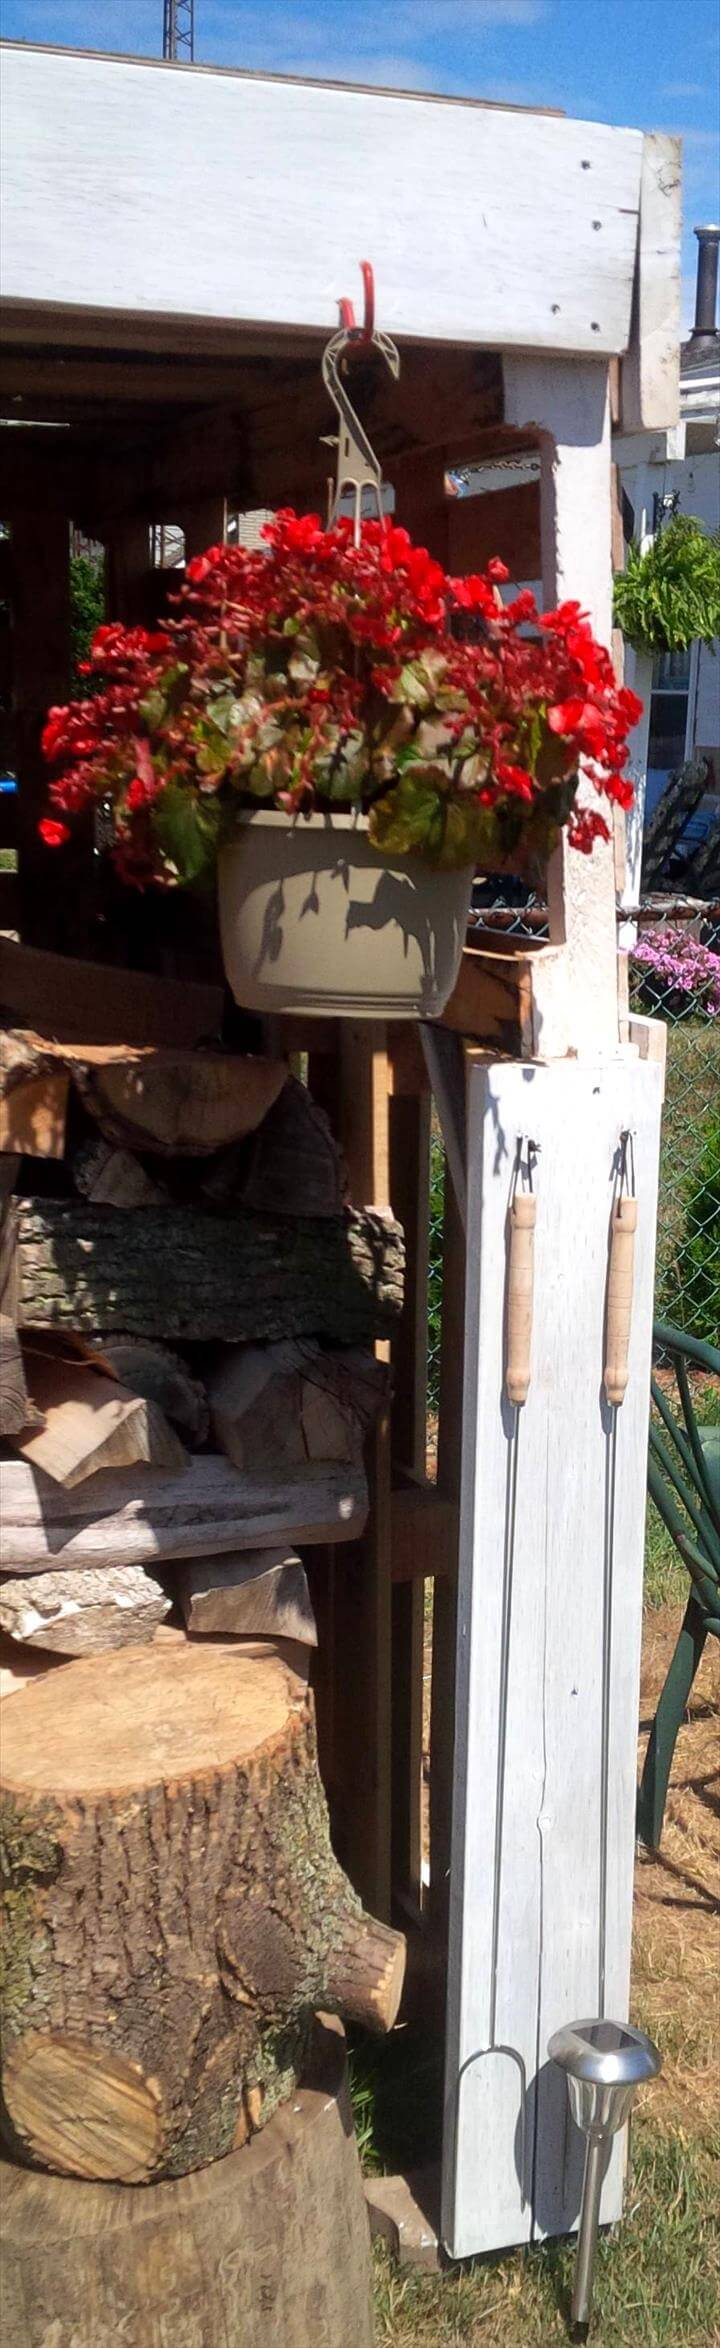 outdoor firewood shed with hanging flower planter